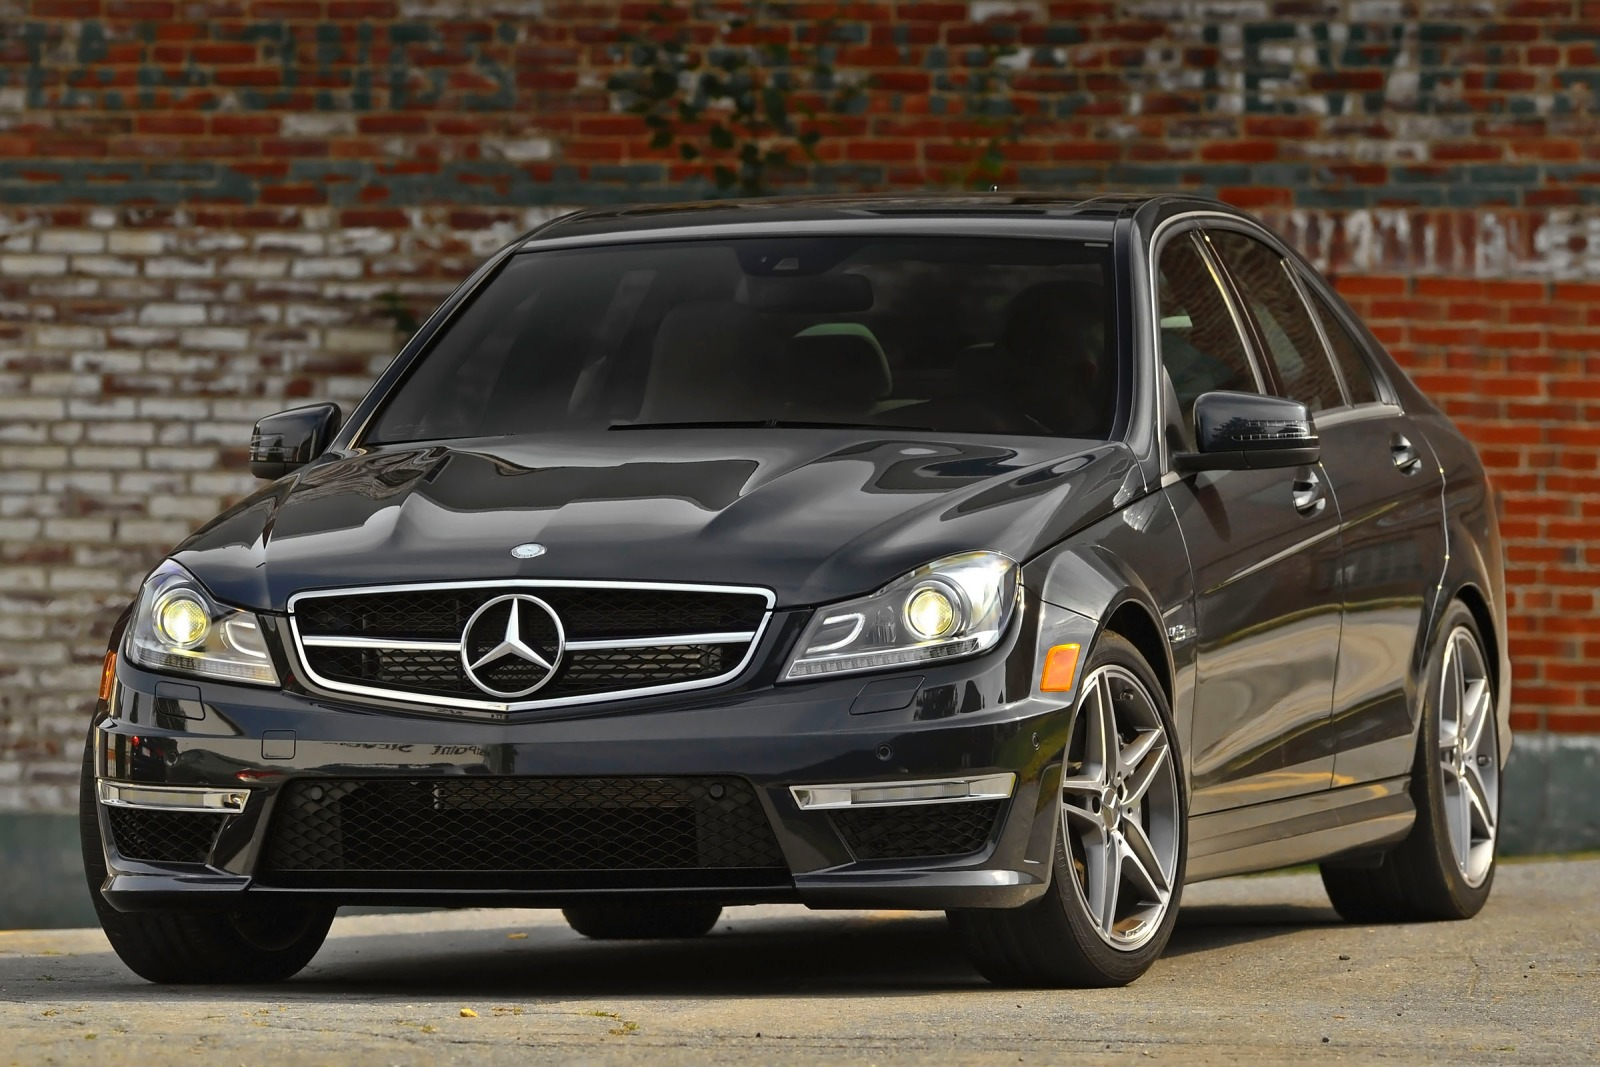 2012 mercedes benz c class image 4 for Mercedes benz maintenance schedule